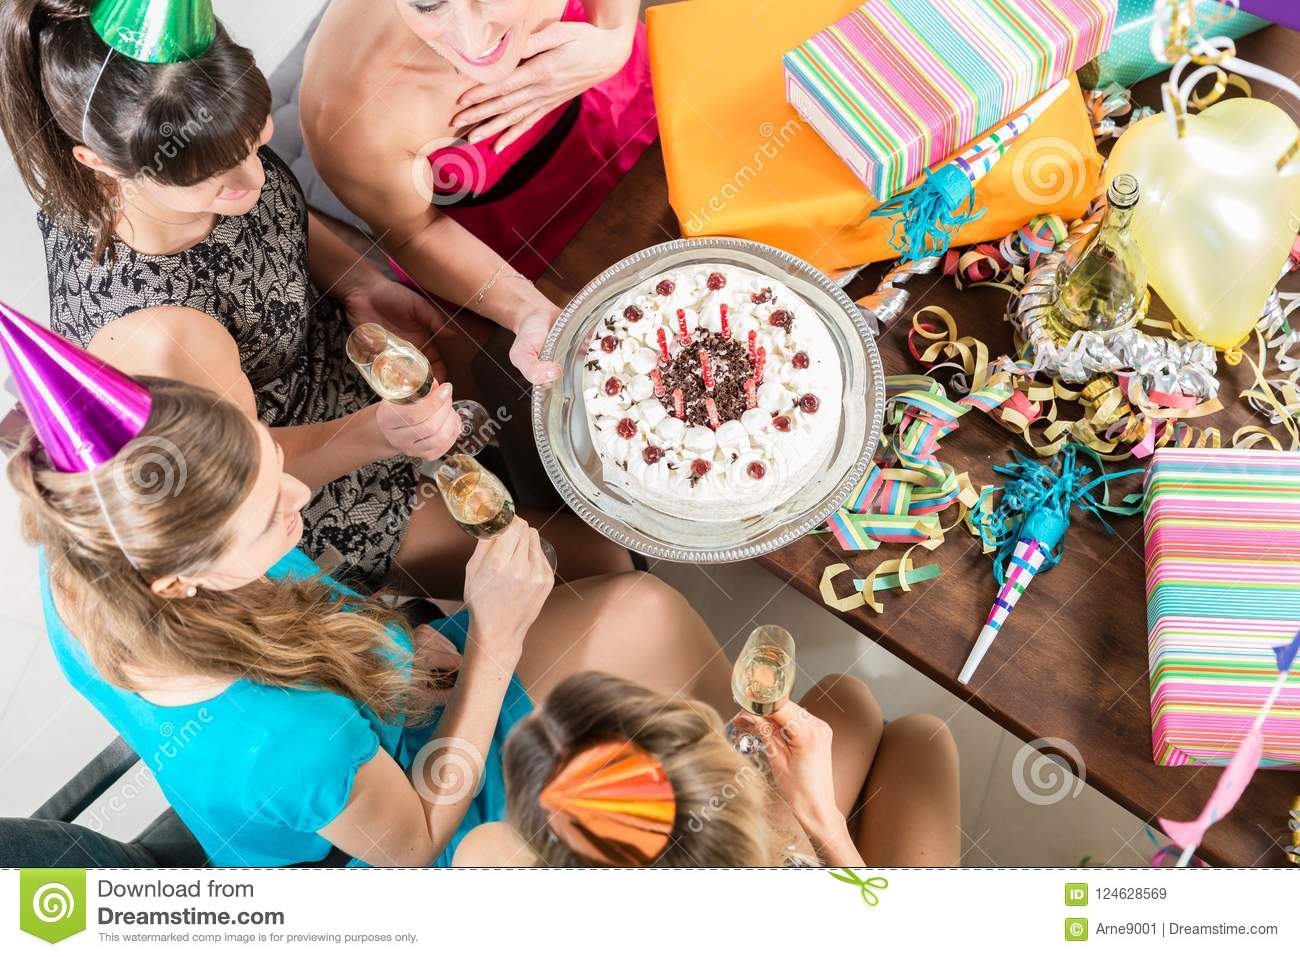 Young women celebrating with cake and champagne a birthday